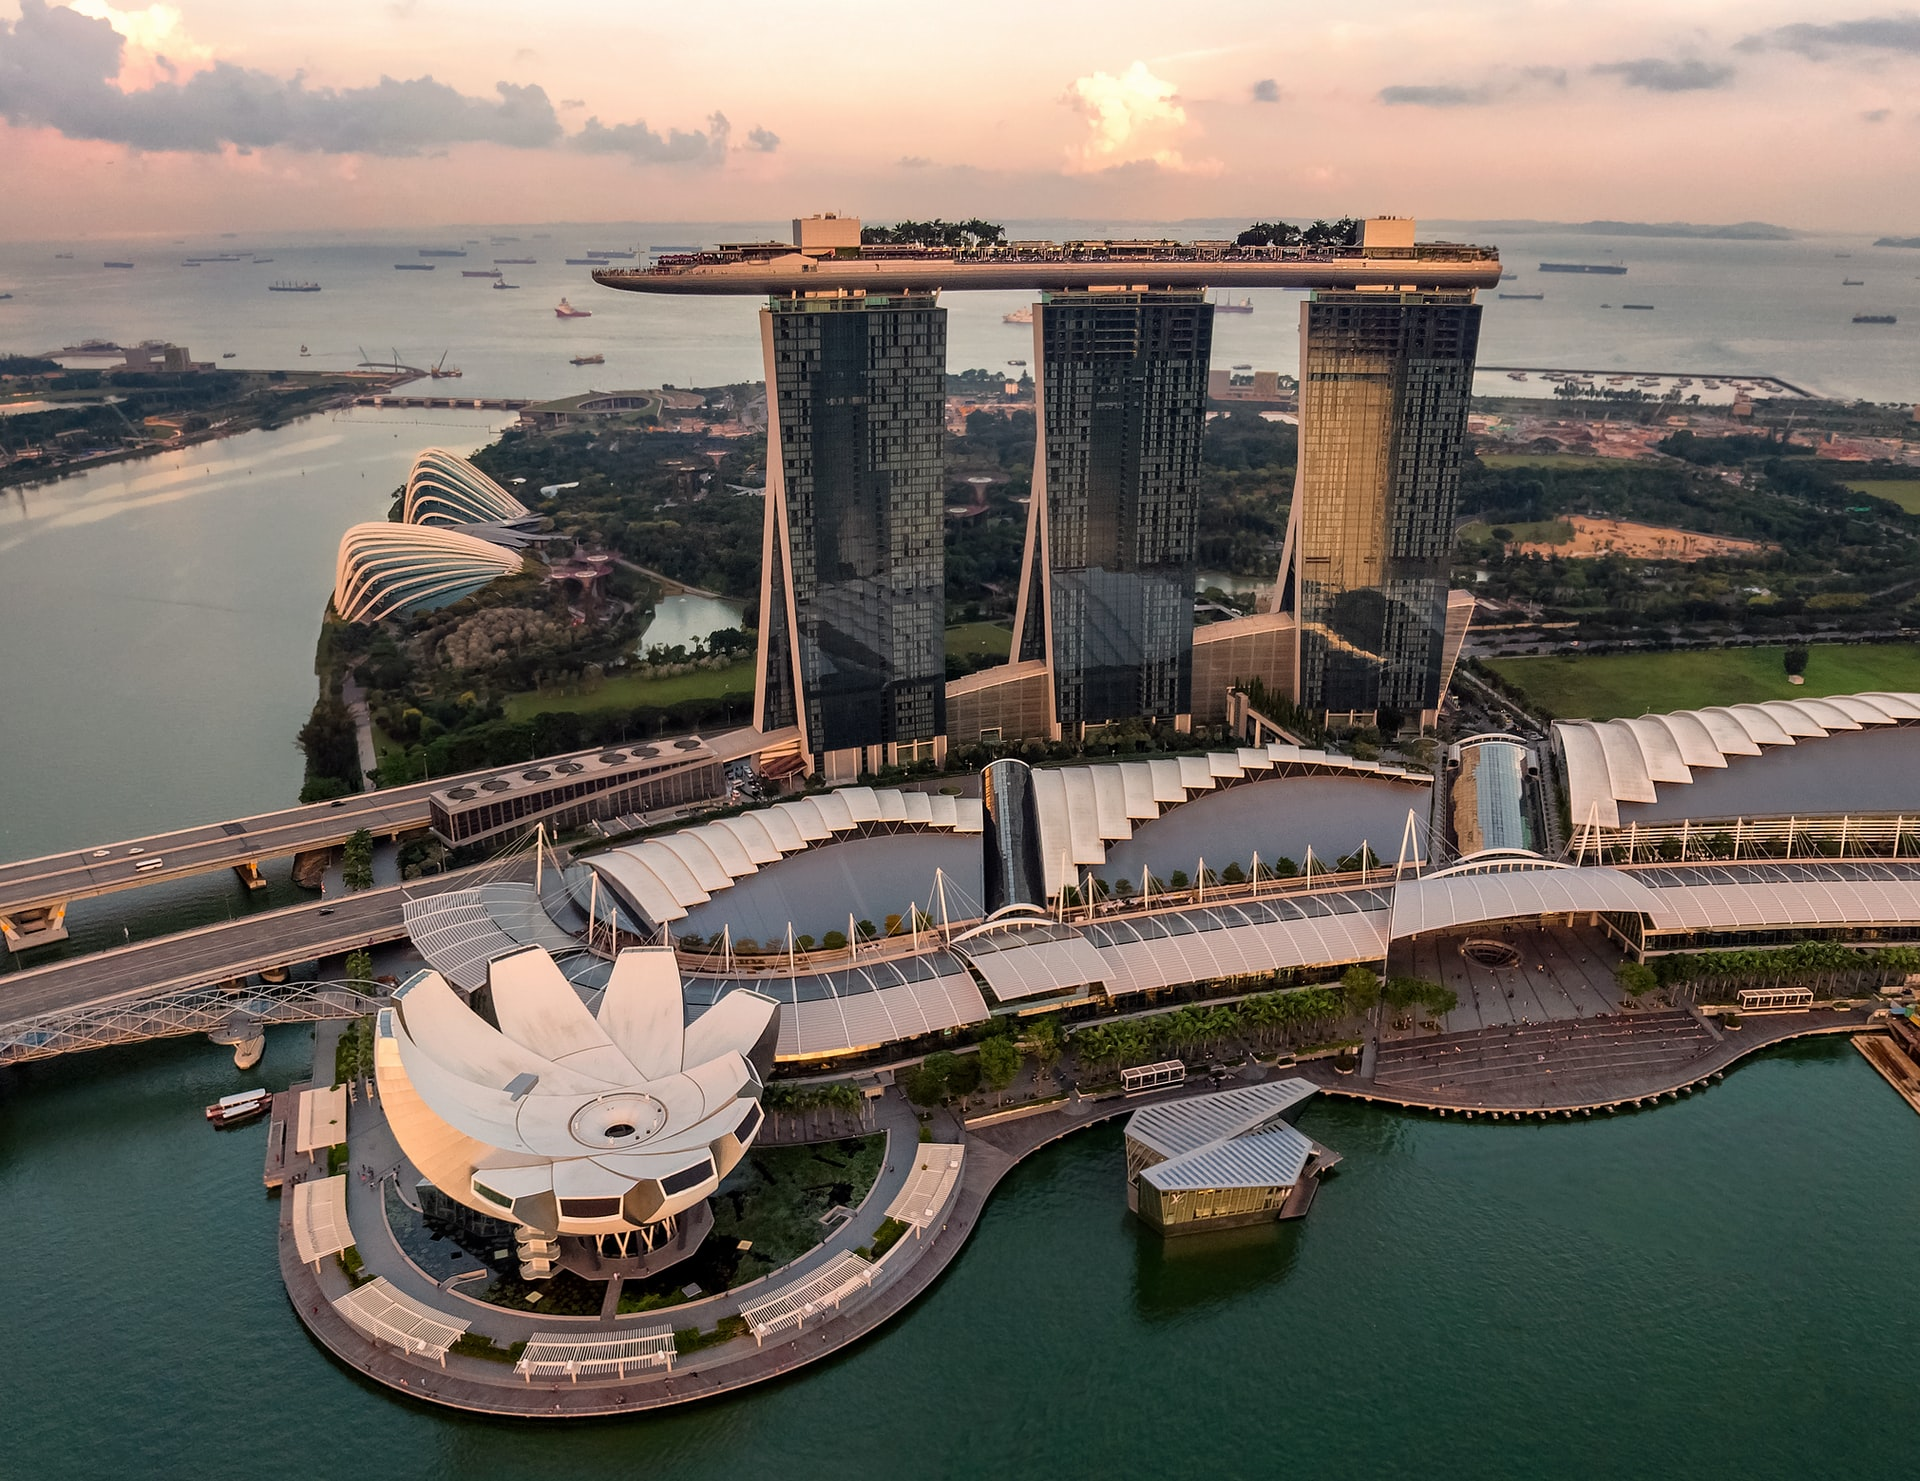 Incisive Law ranked as one of Singapore's Best Law Firms for Maritime Law